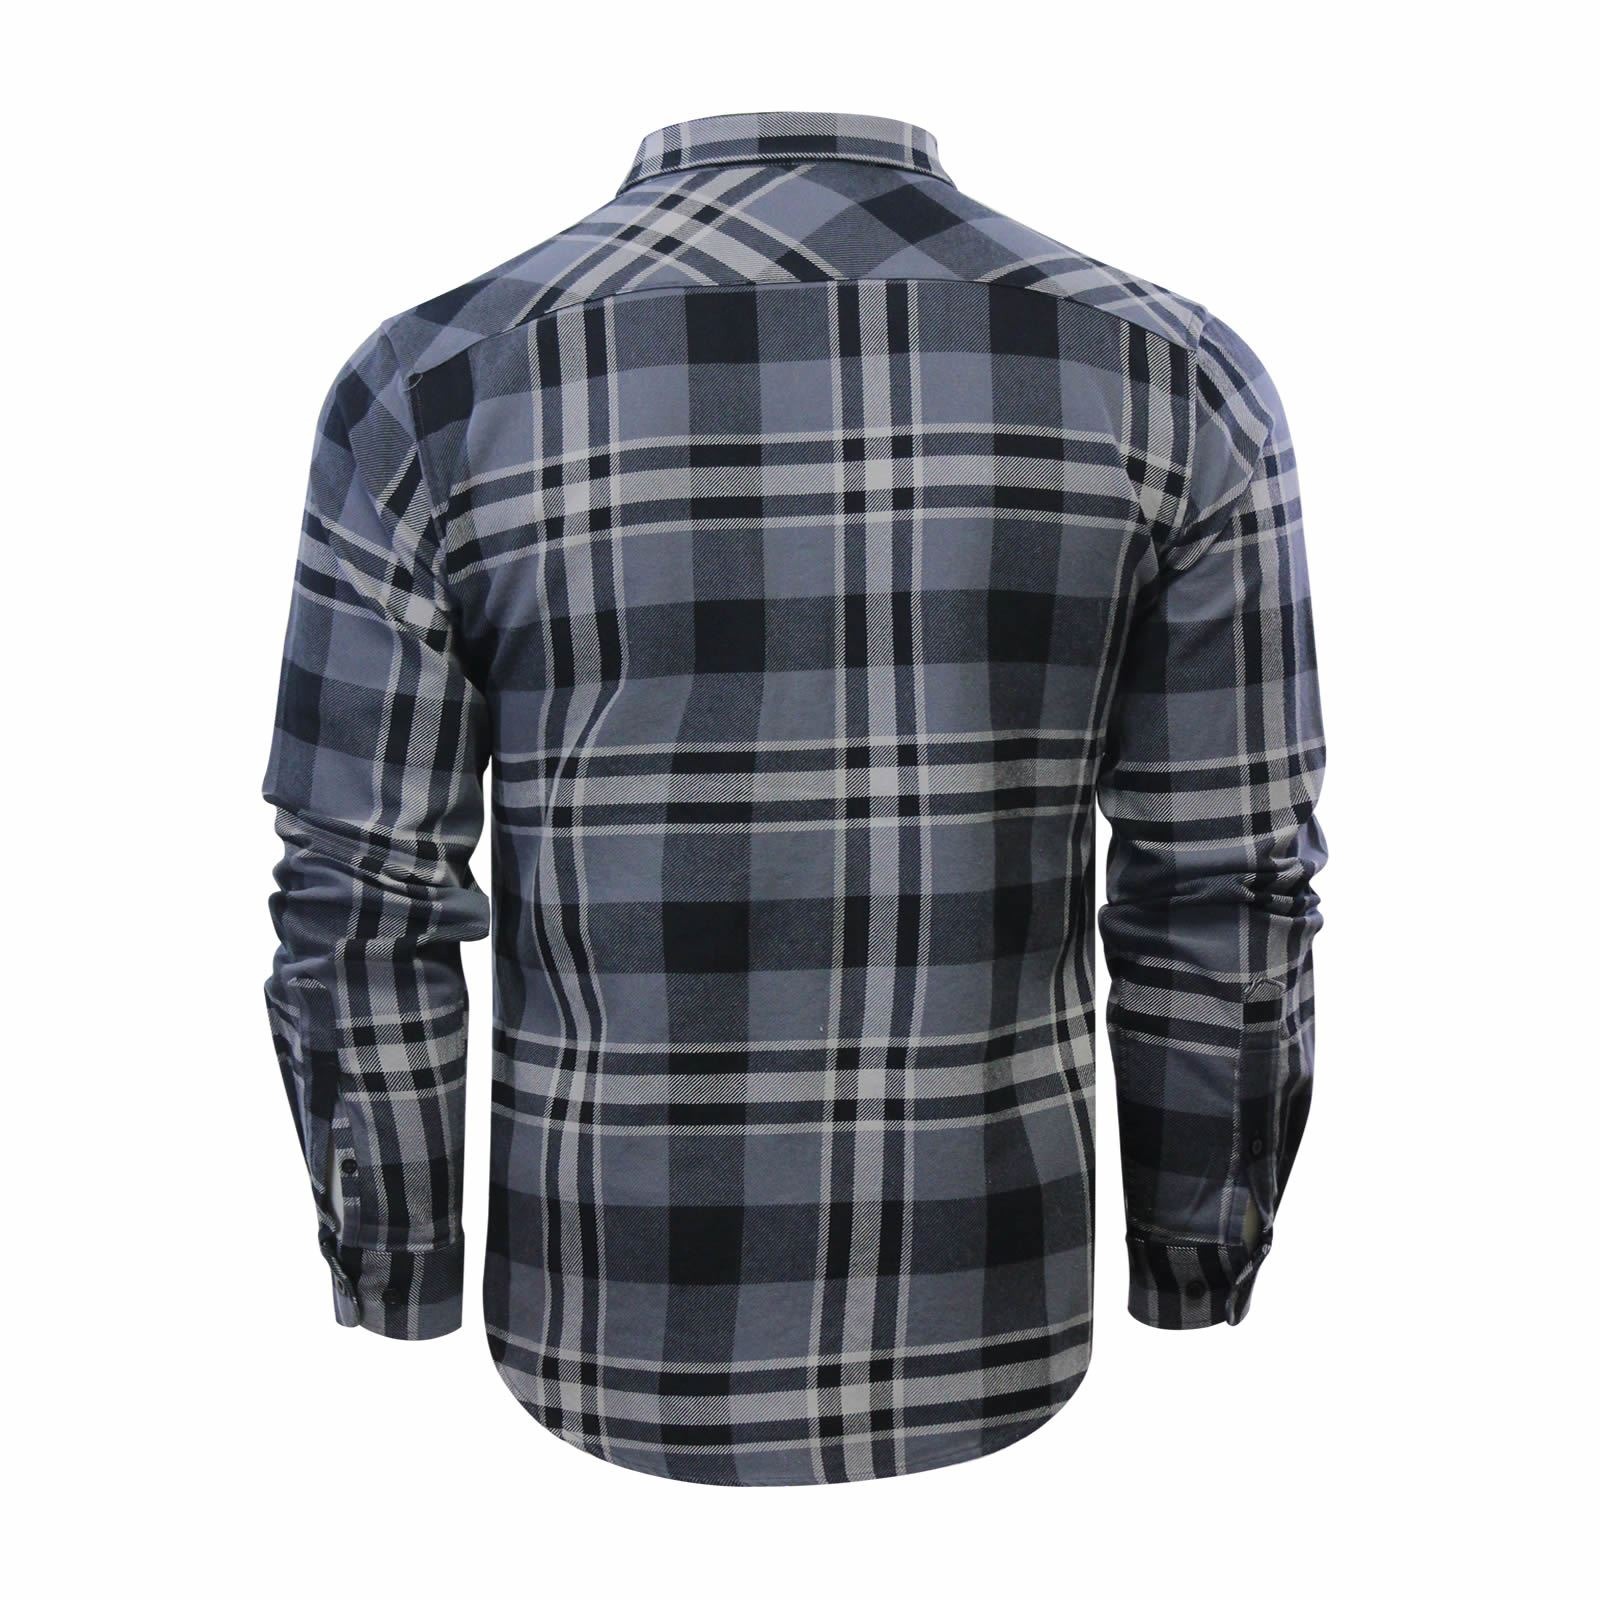 Mens Check Shirt Crosshatch Arizonica Flannel Brushed Cotton Long Sleeve